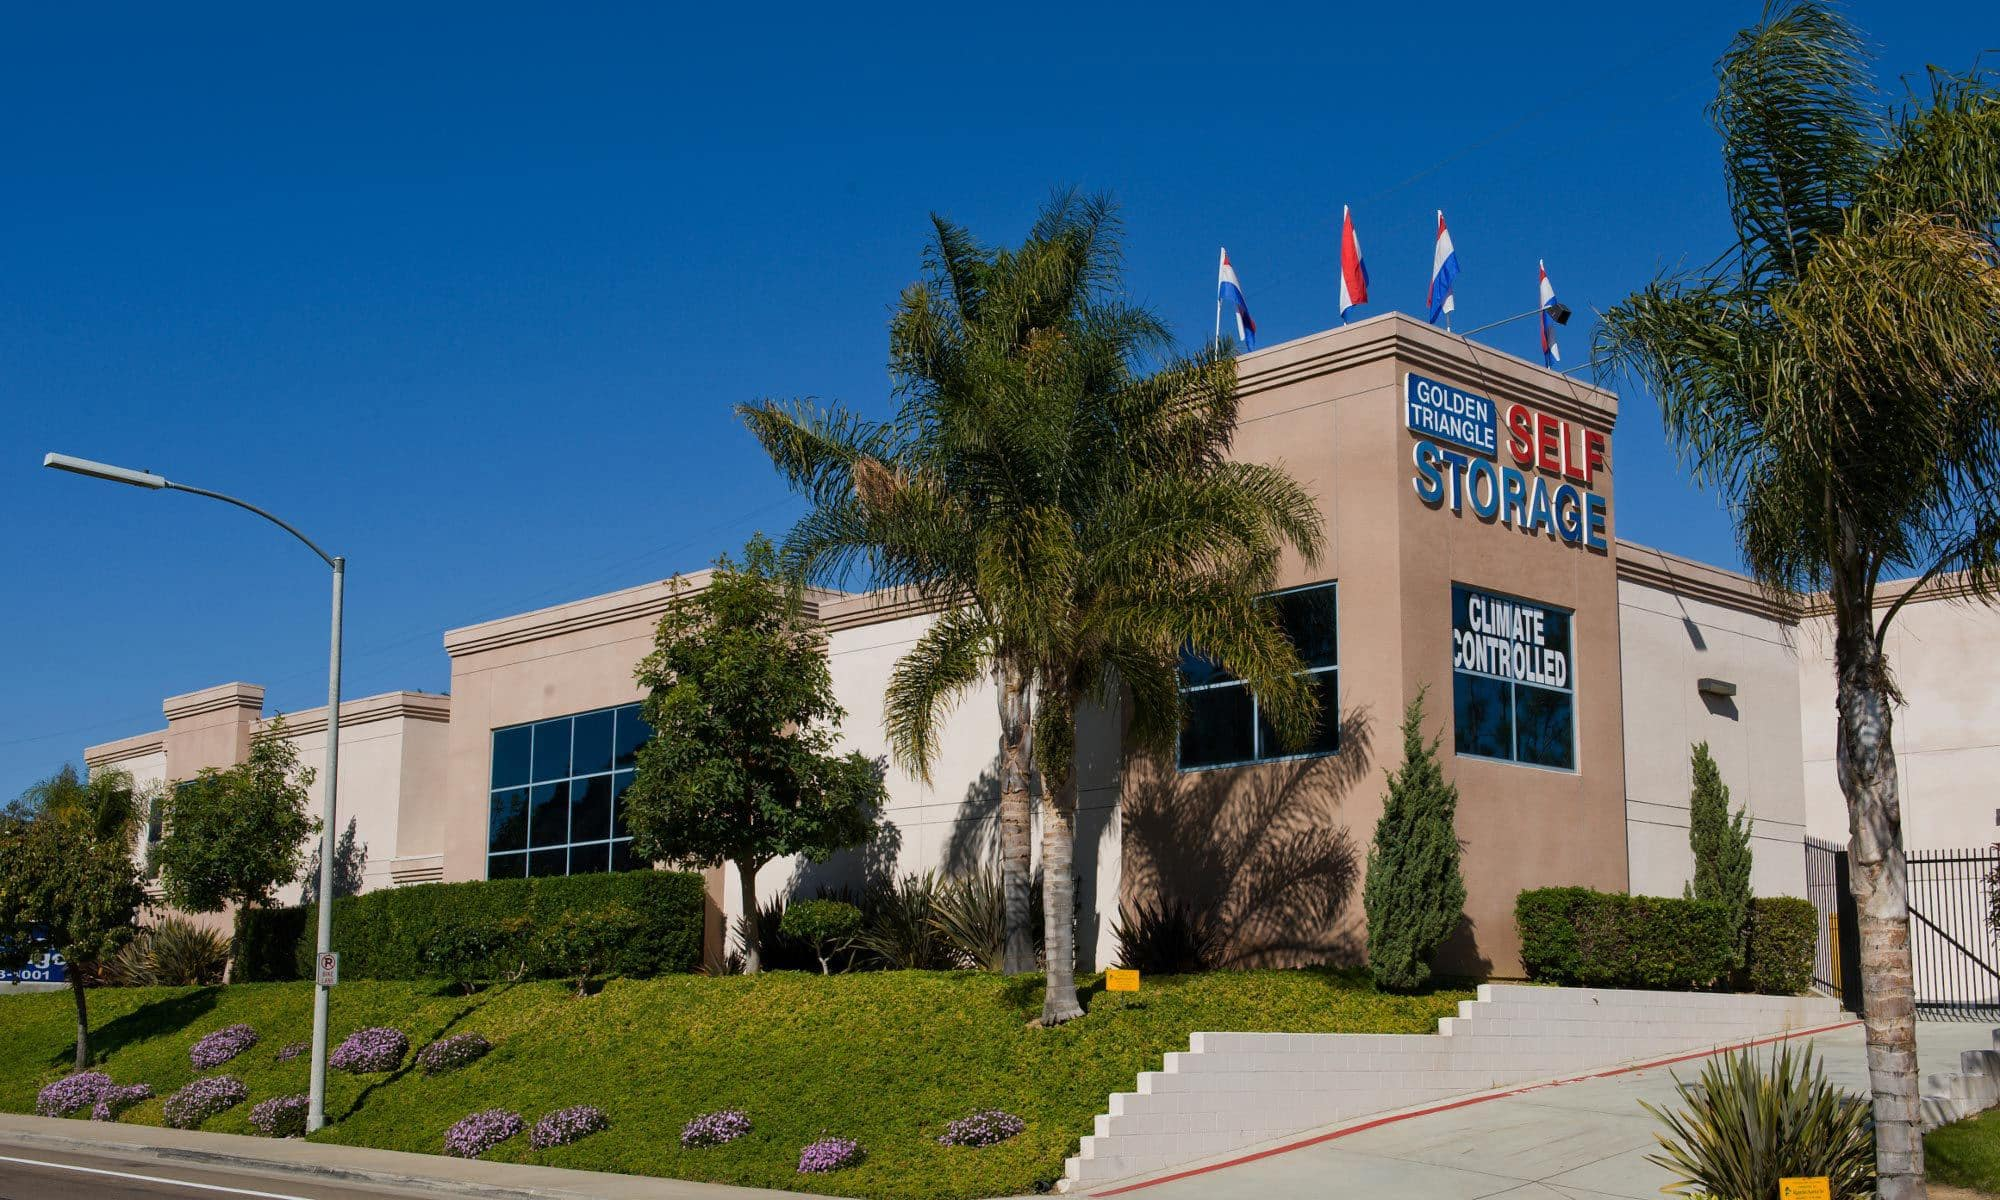 Come see Golden Triangle Self Storage for the best self storage in San Diego.